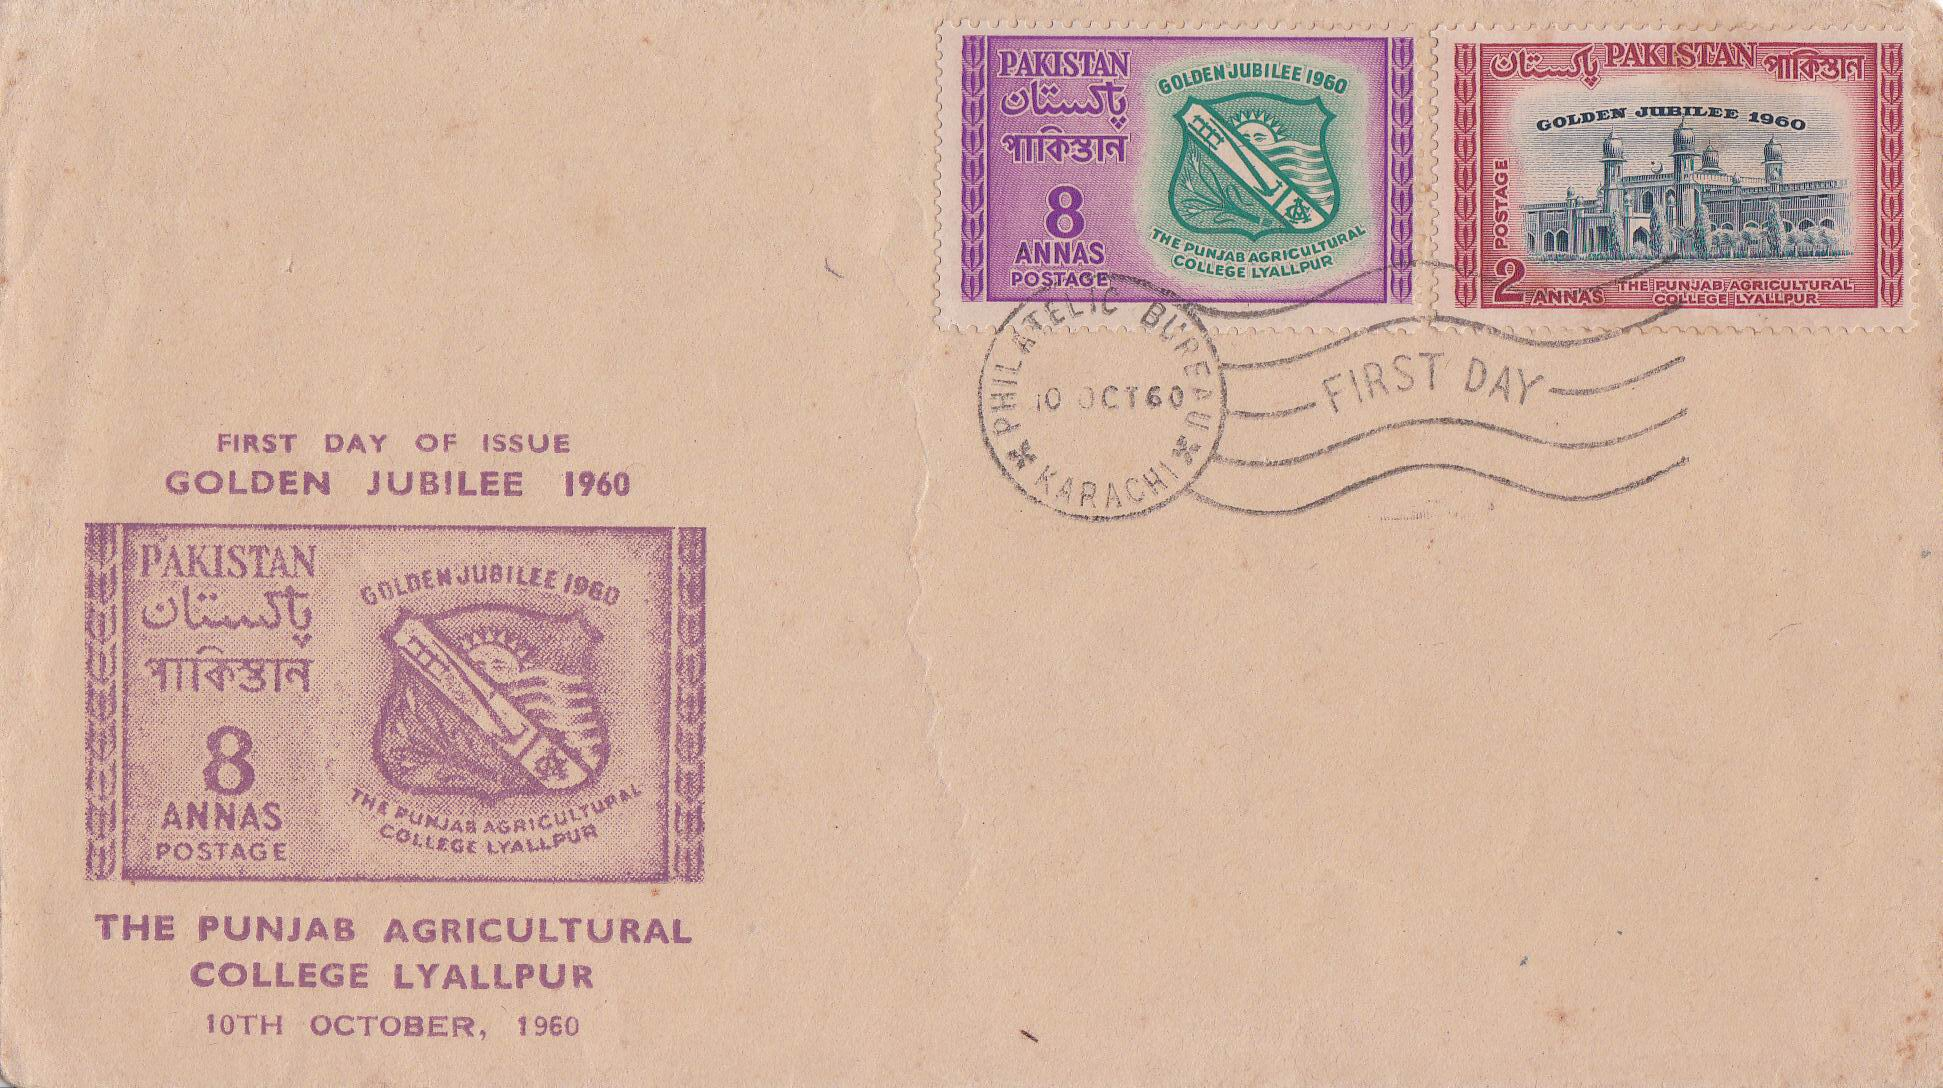 Pakistan Fdc 1960 Golden Jubilee Punjab Agricultural College